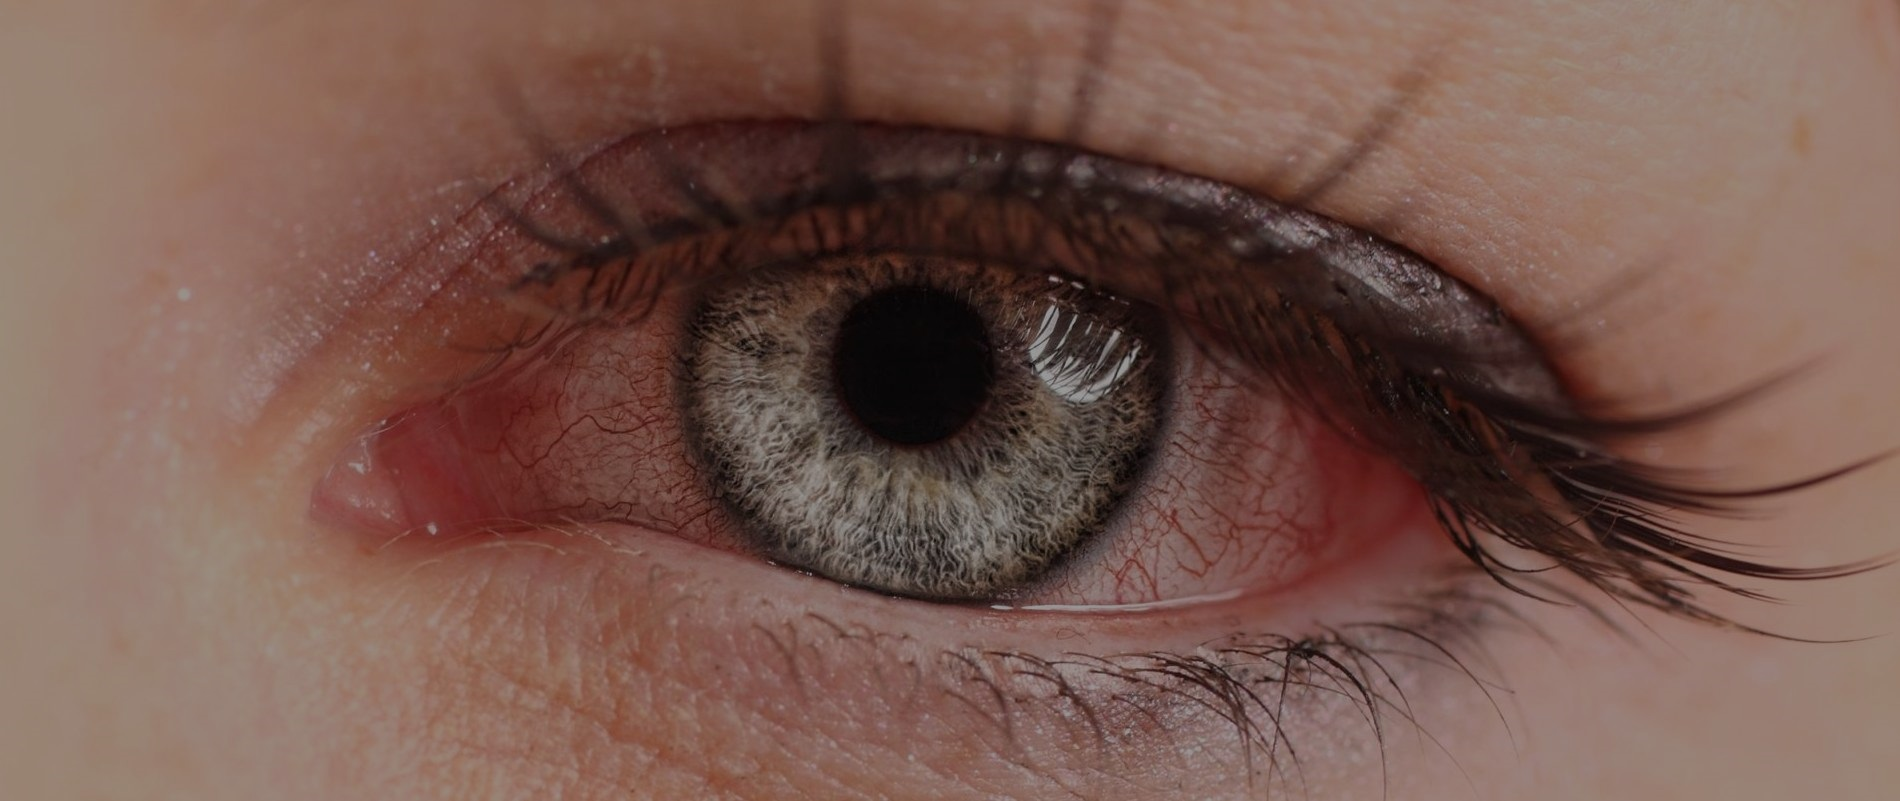 How severe are your dry eye symptoms?